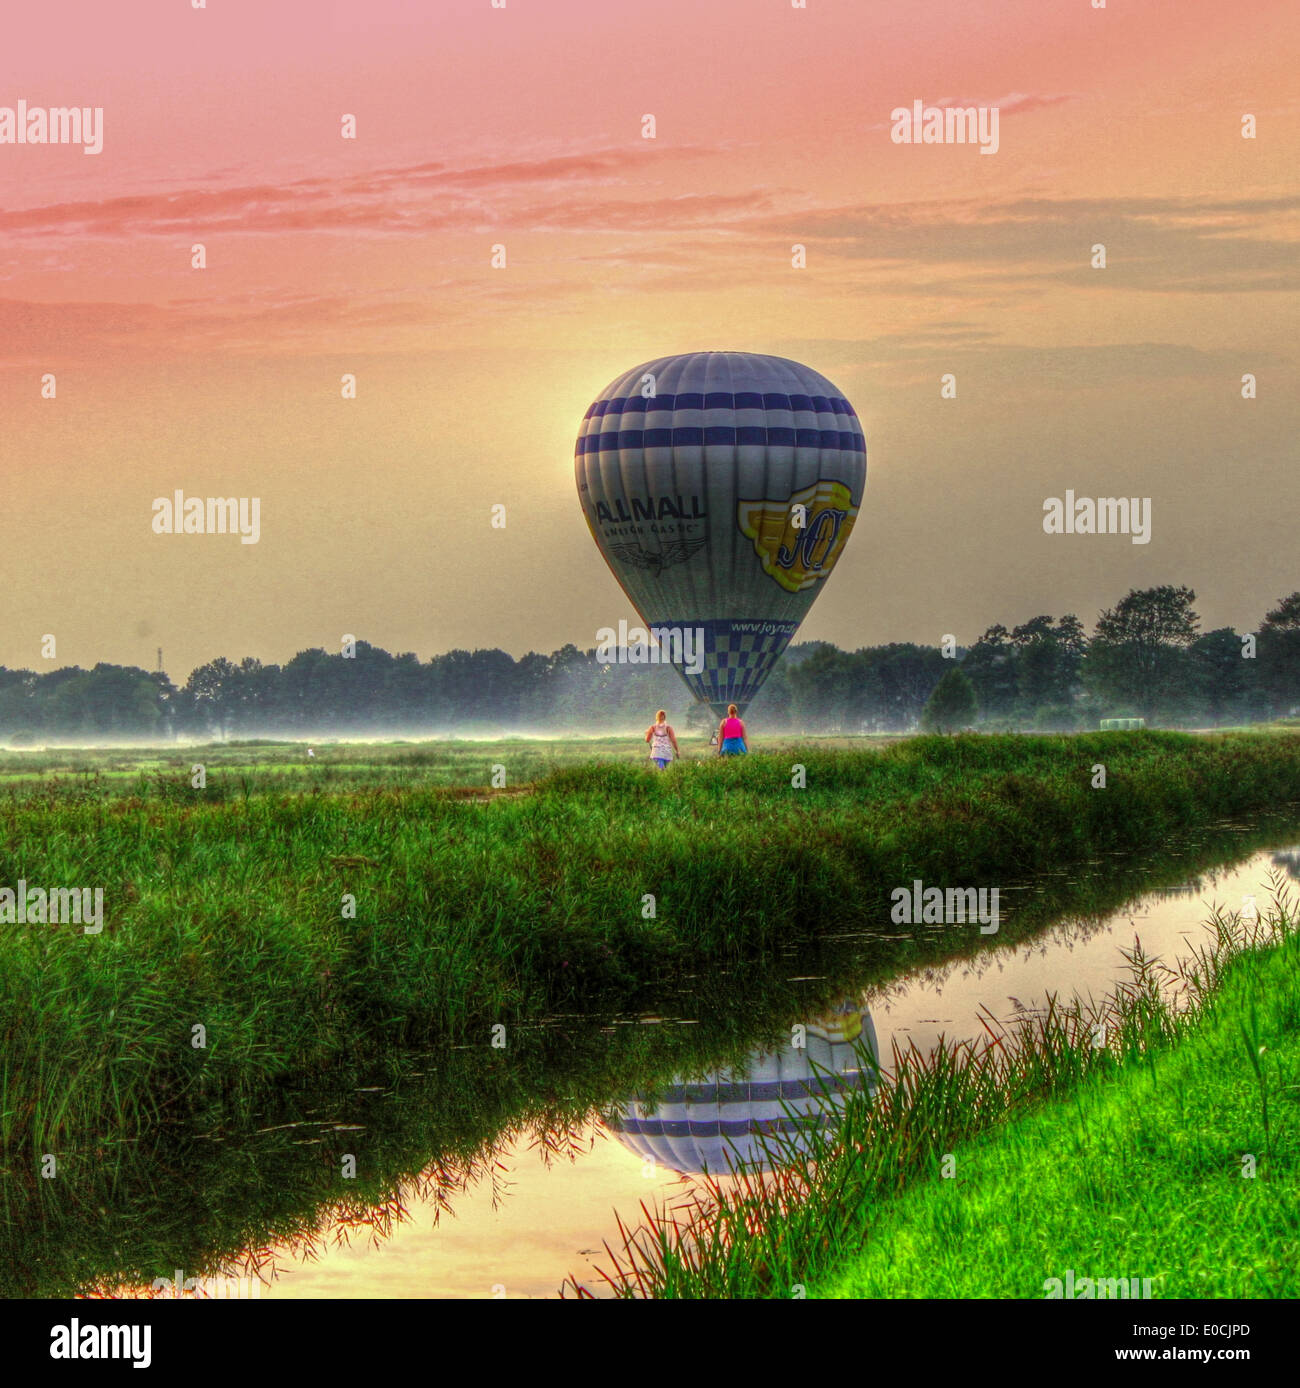 Hot air balloon just after landing in  a summer landscape in the Northern Netherlands (HDR edit) - Stock Image